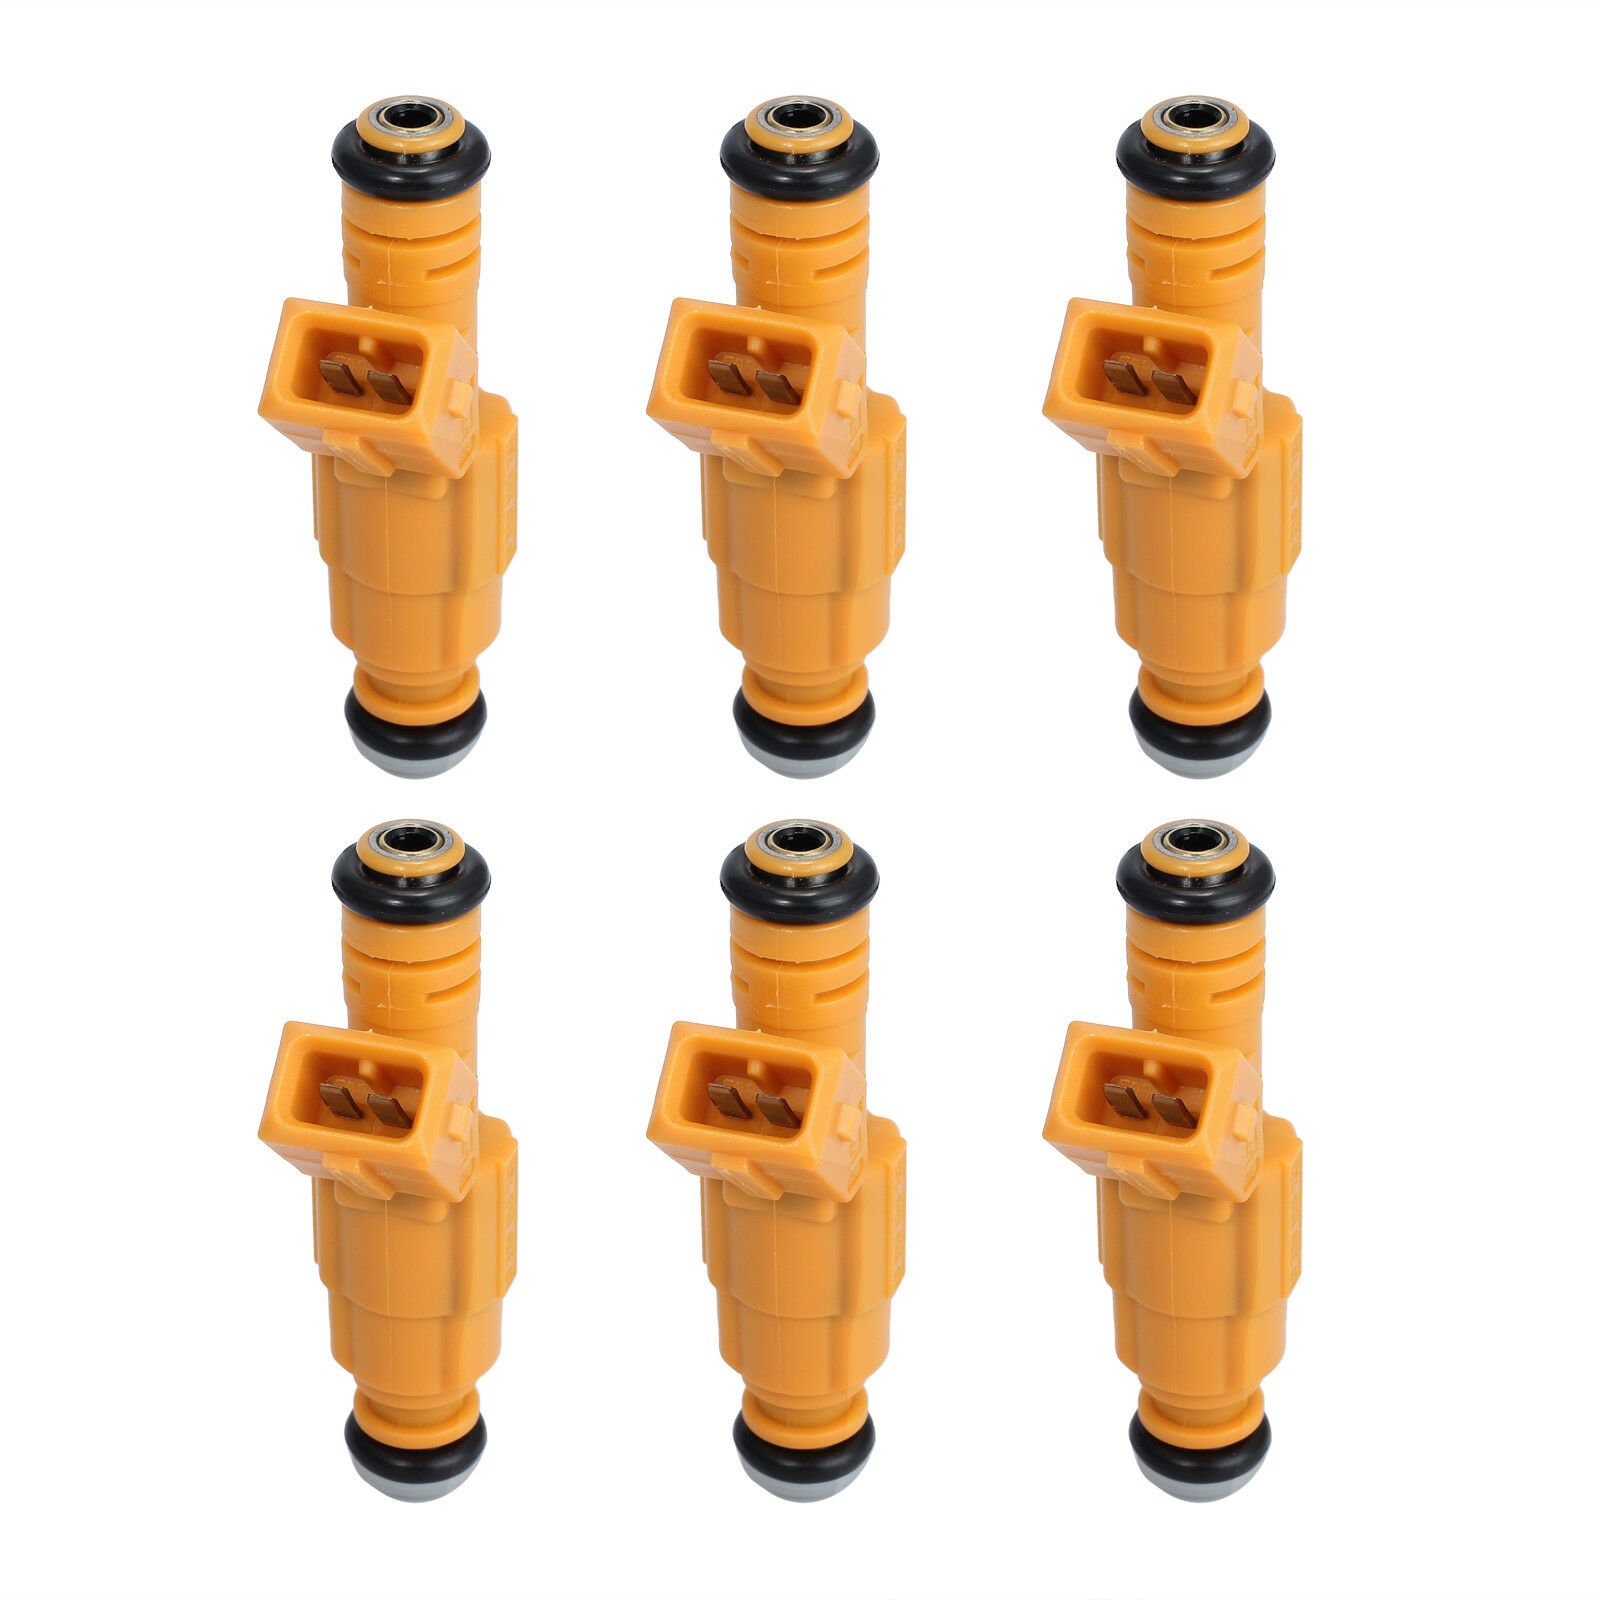 6x Fuel Injector For 1994-1999 Ford Mercury Lincoln 4.6L 5.0L 6.8L 0280155710